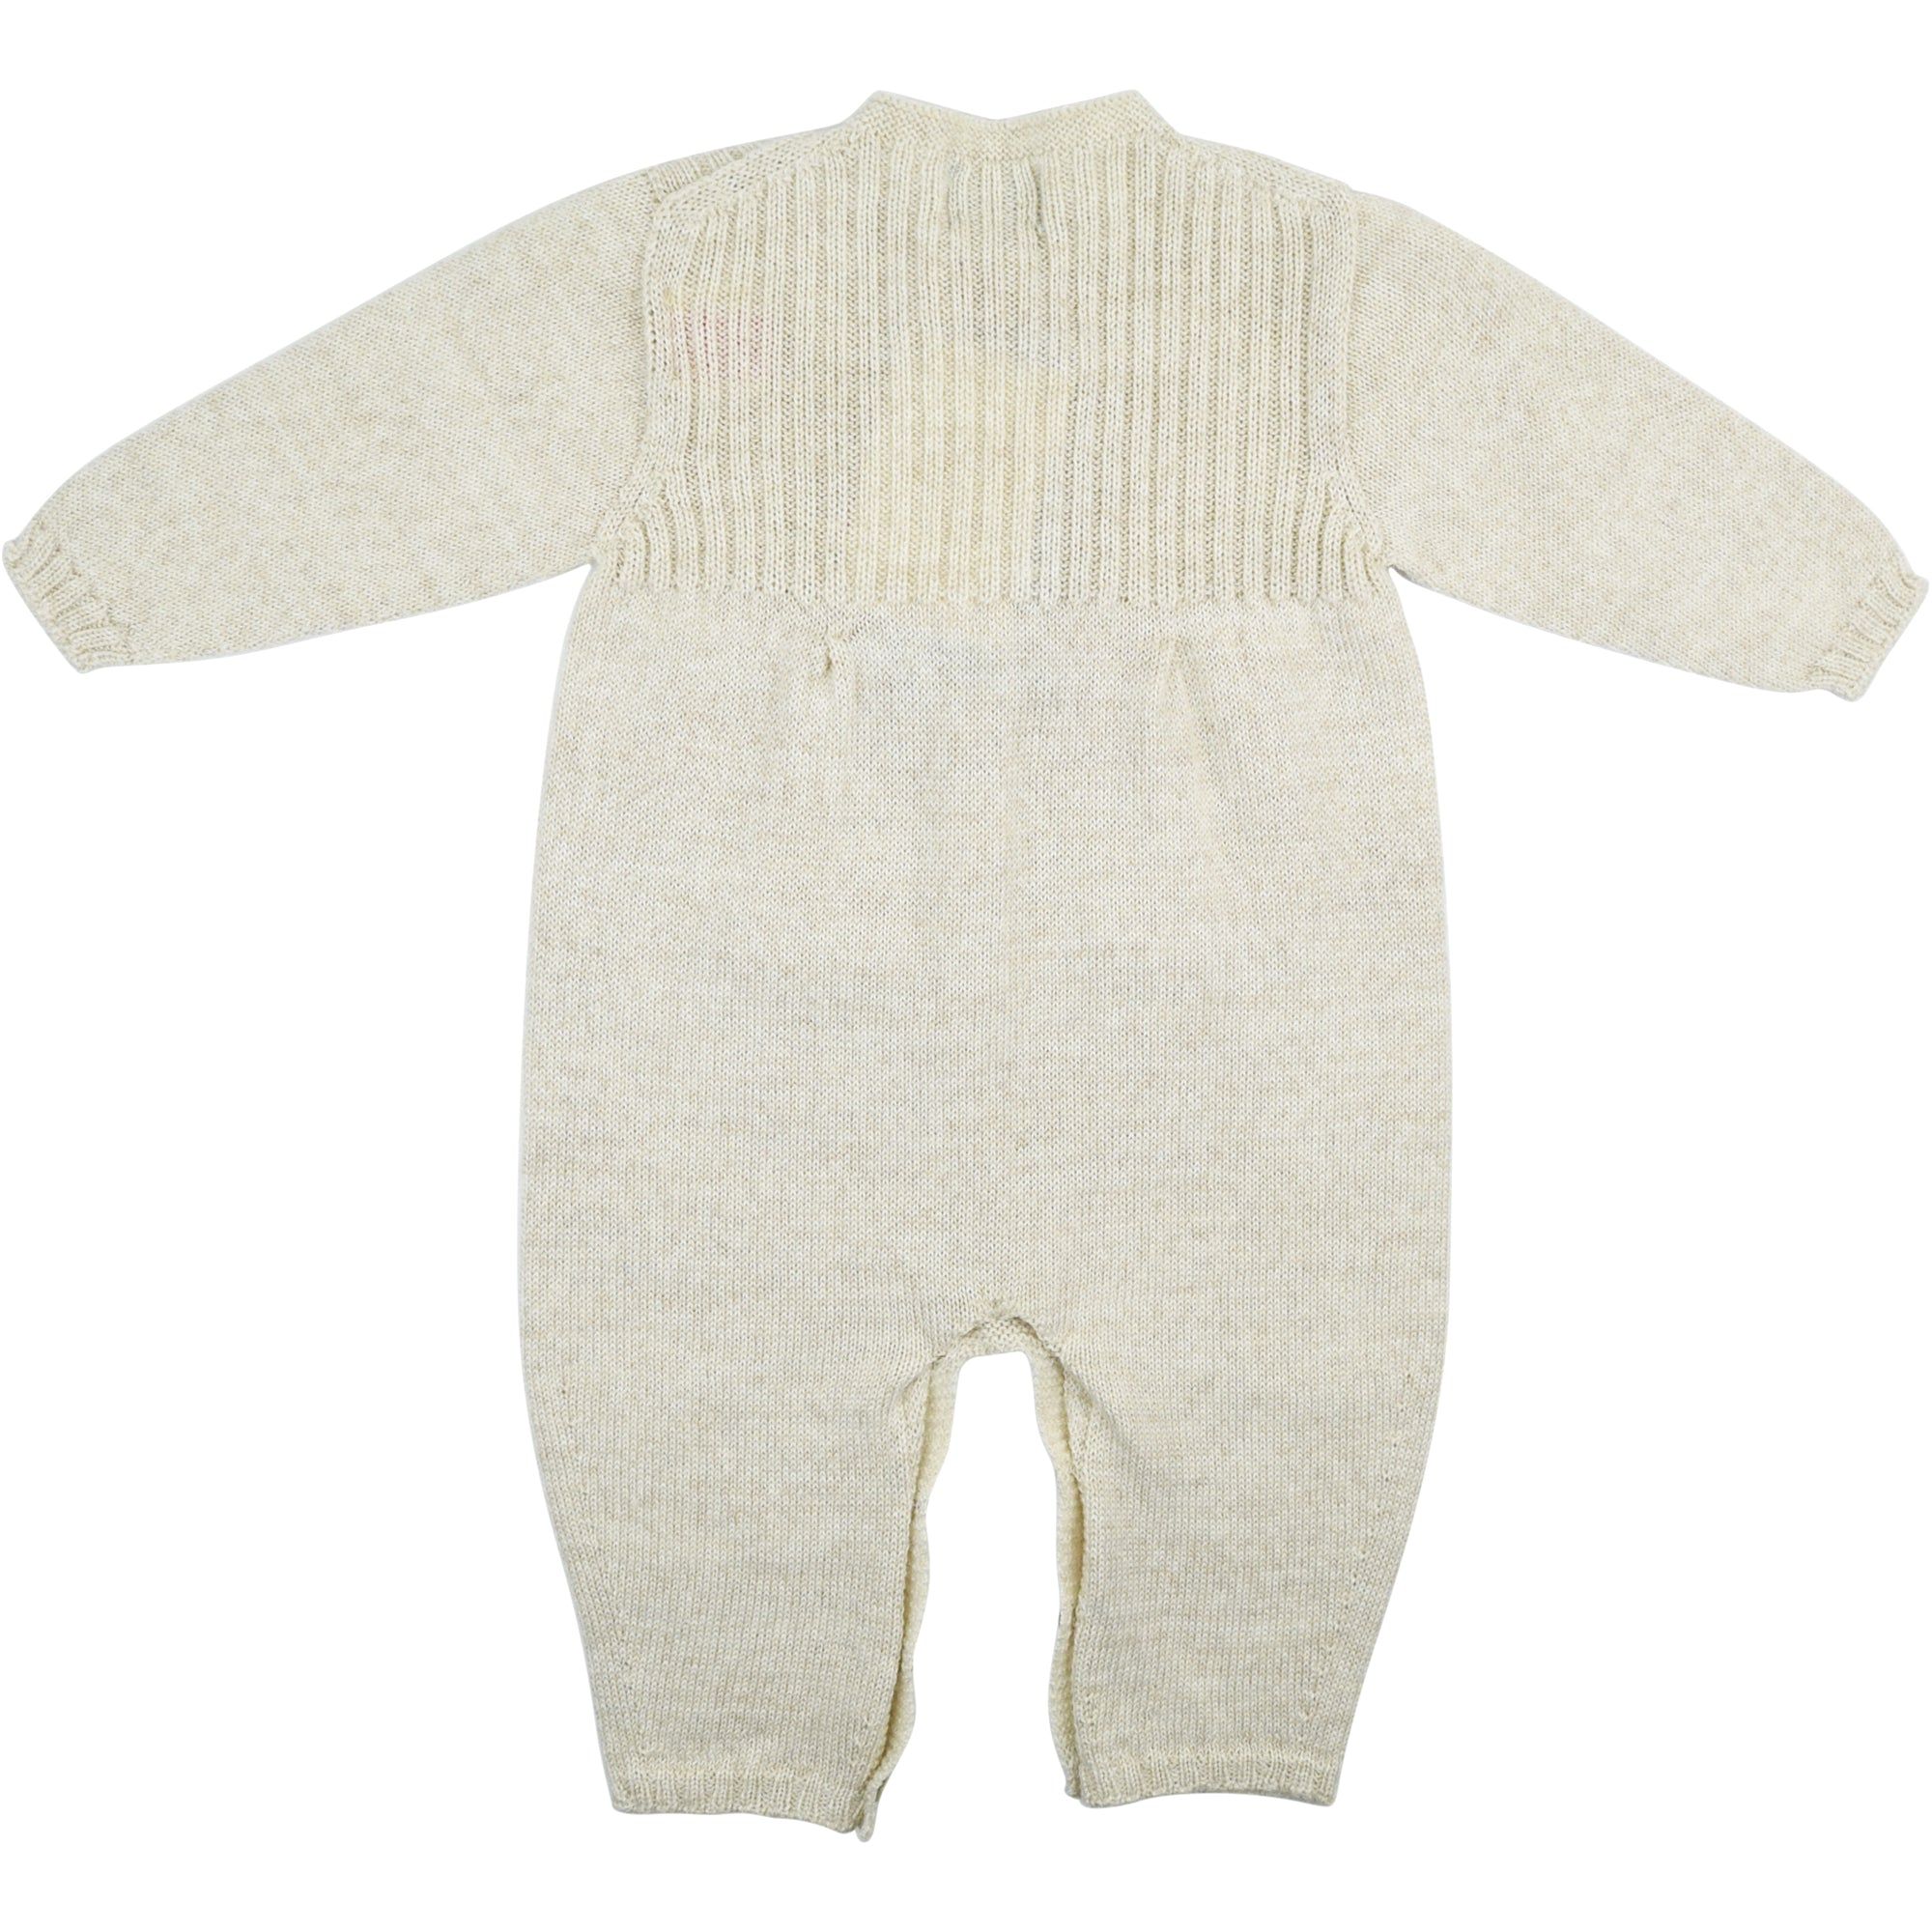 Floc Baby Stone Knitted Playsuit